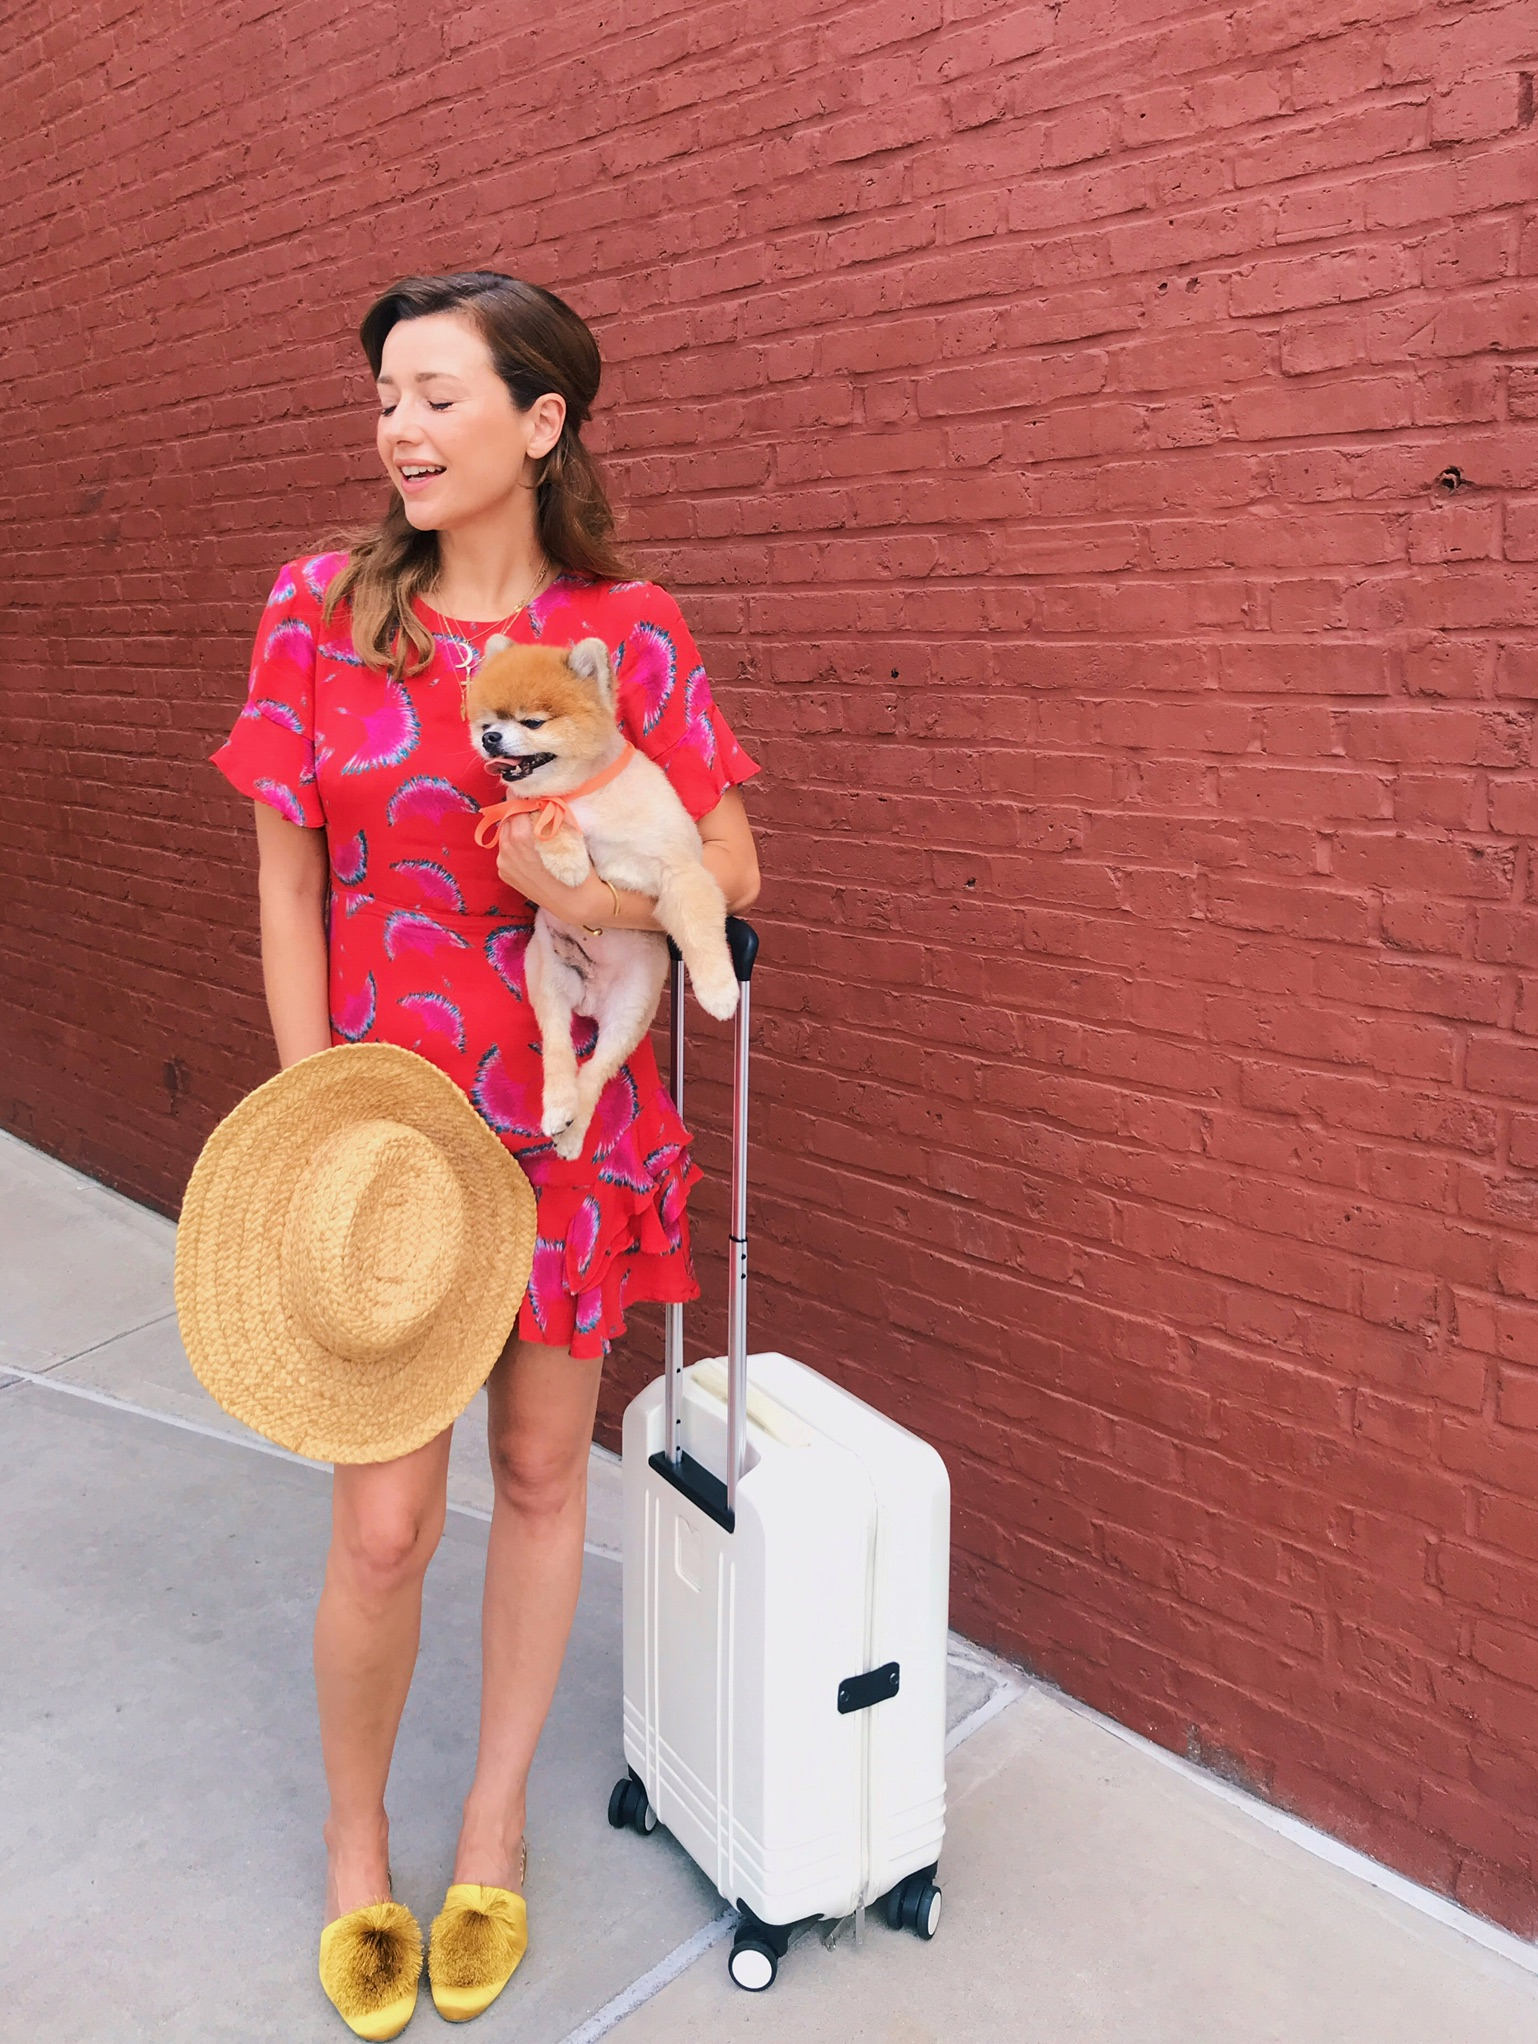 - Travel writer Christina Pérez shares her favorite tips for packing right.Read more . . .